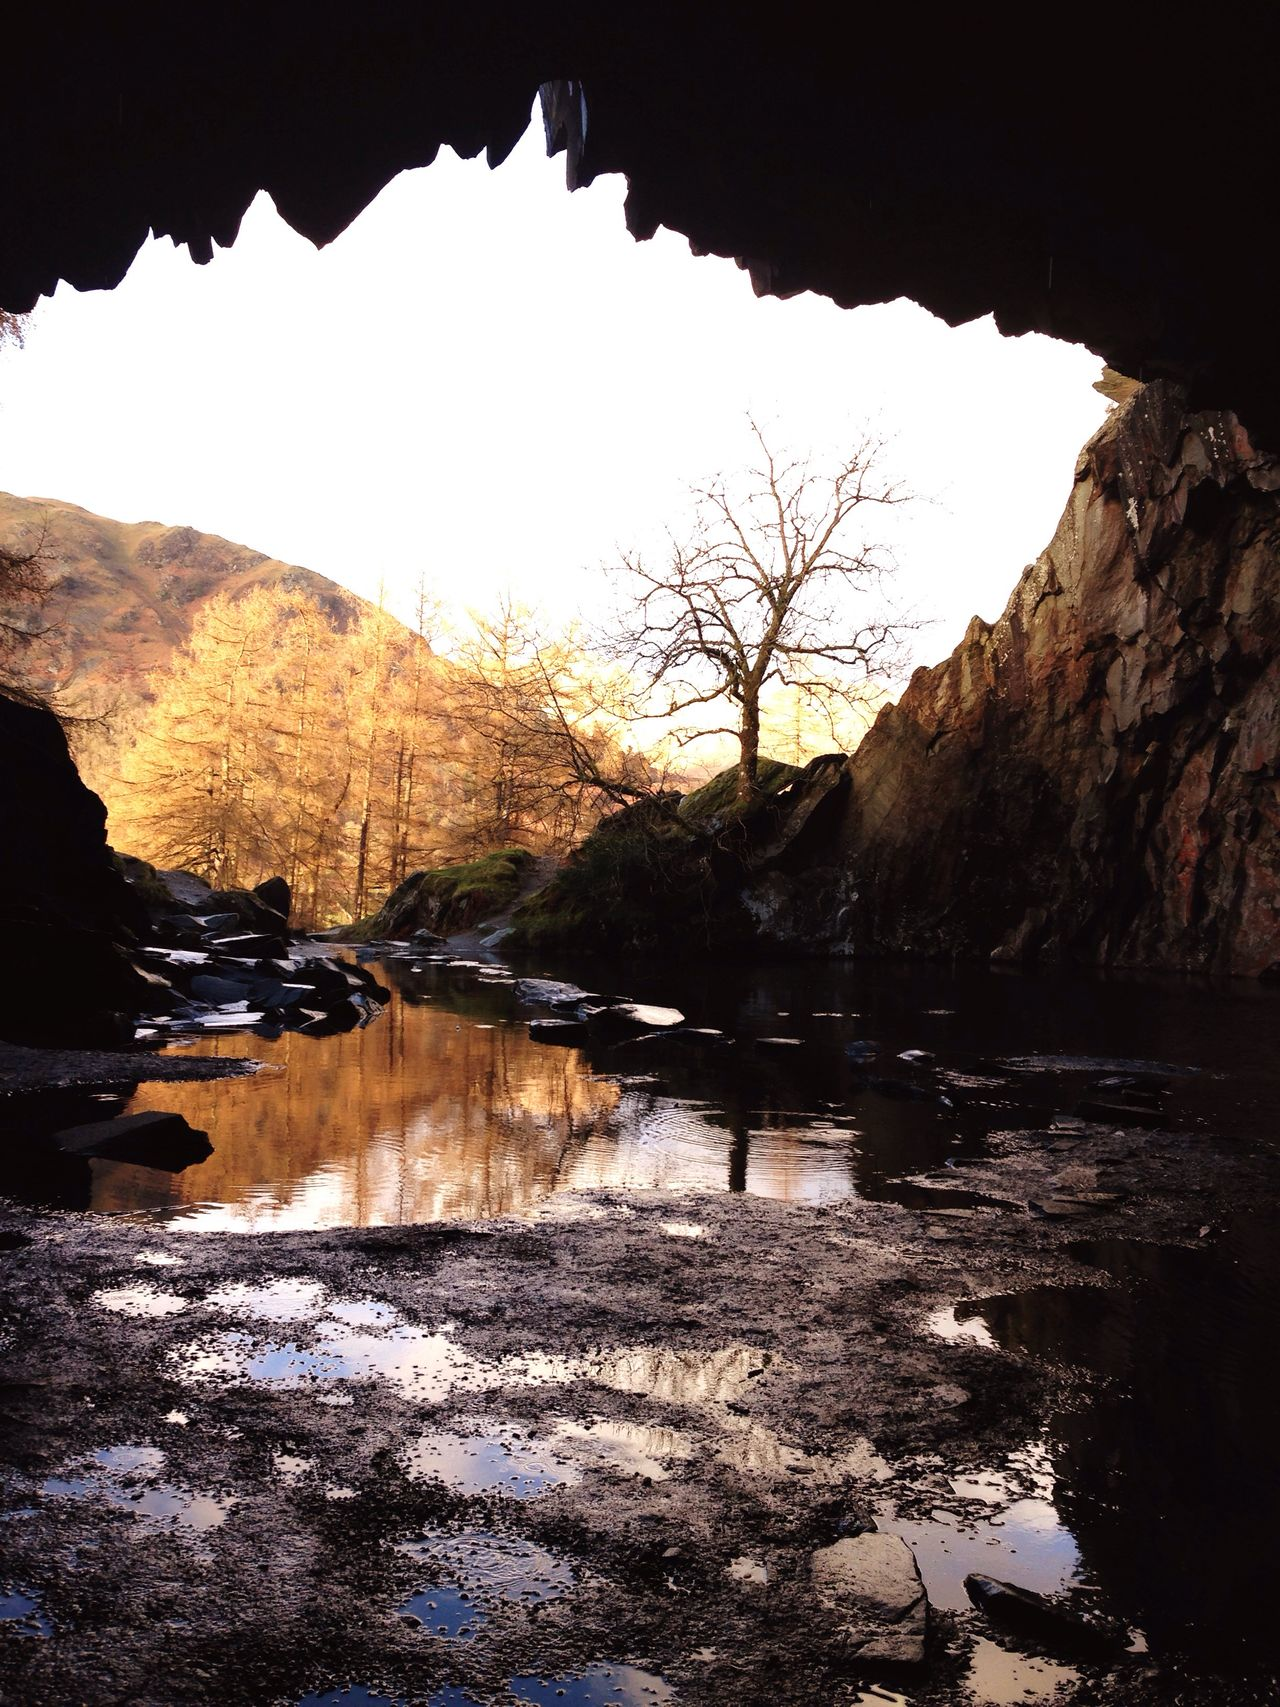 Nature Beauty In Nature Outdoors Water Tree Cave Lake District No People Scenics Non-urban Scene Tranquility Bare Tree Tranquil Scene Day Romantic Walk Hiking Adventure Relaxing Life Is Beautiful Beautiful Nature Miles Away Forest Puddles Spring